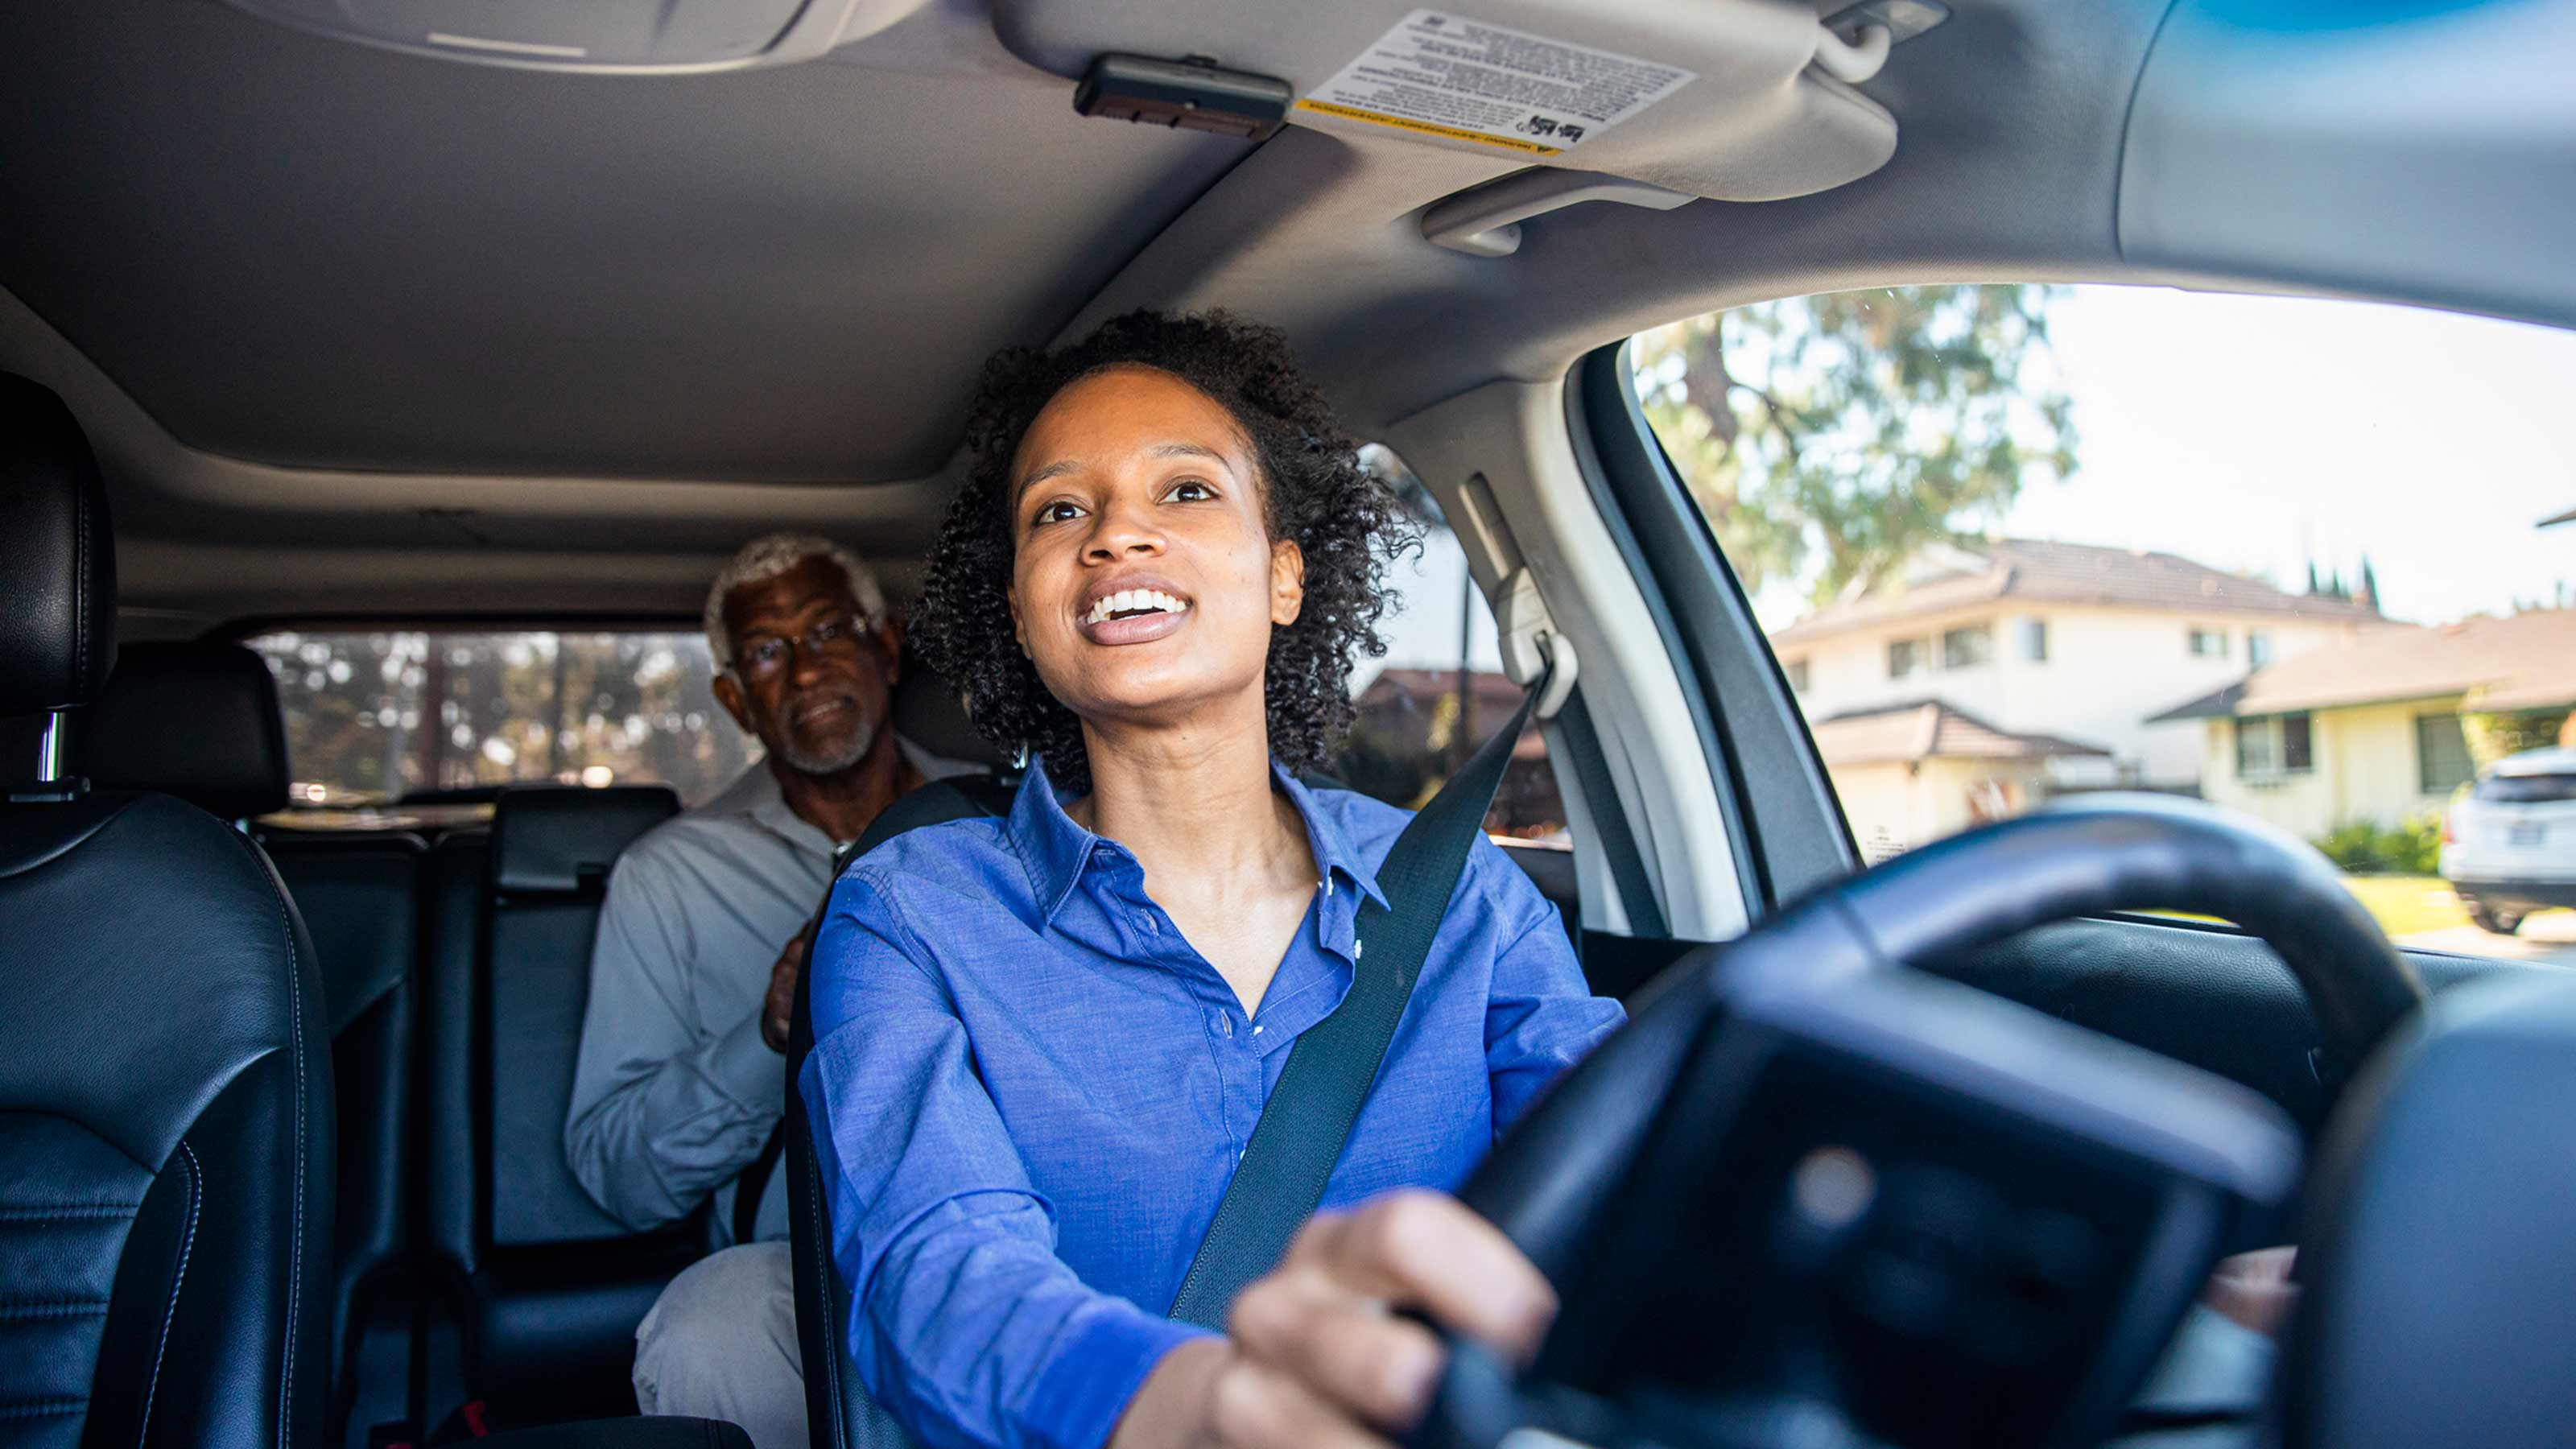 Going Places Without a Car in Retirement | Kiplinger